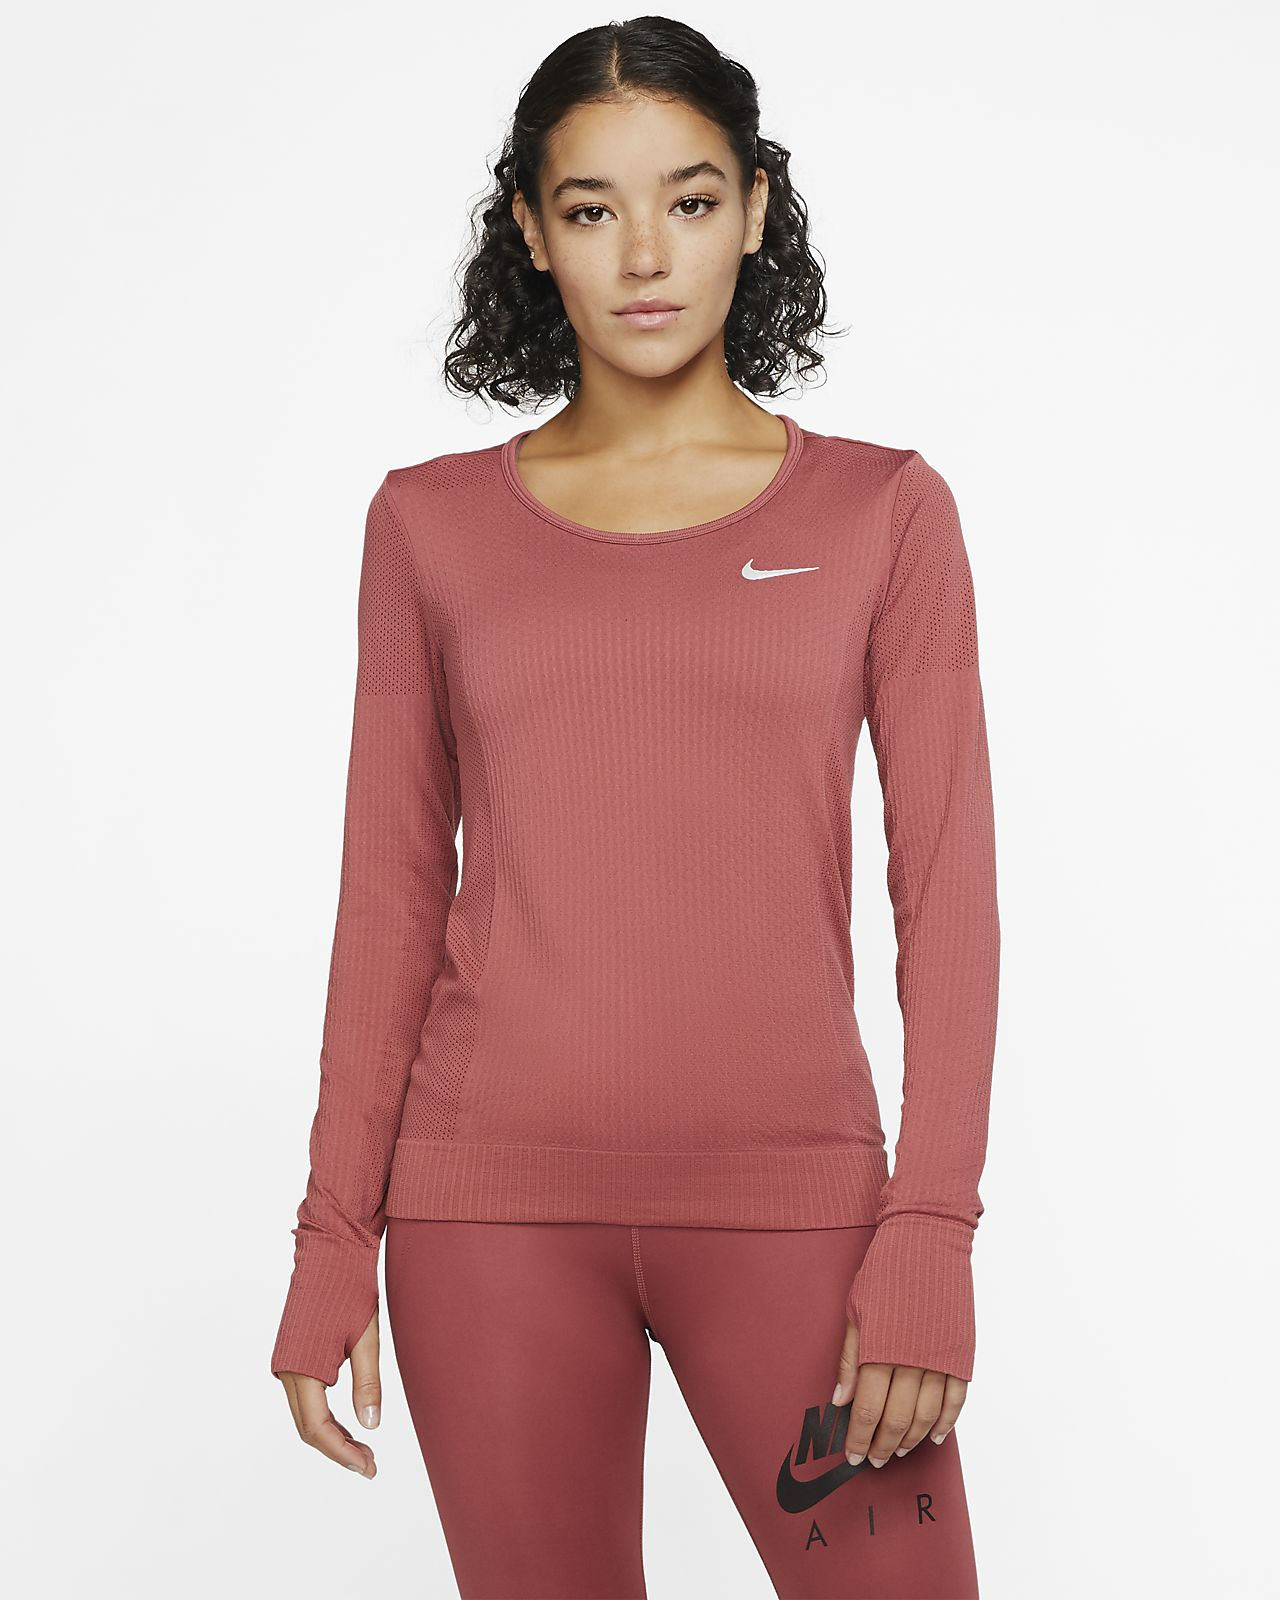 Nike Infinite Women's Long Sleeve Running Top